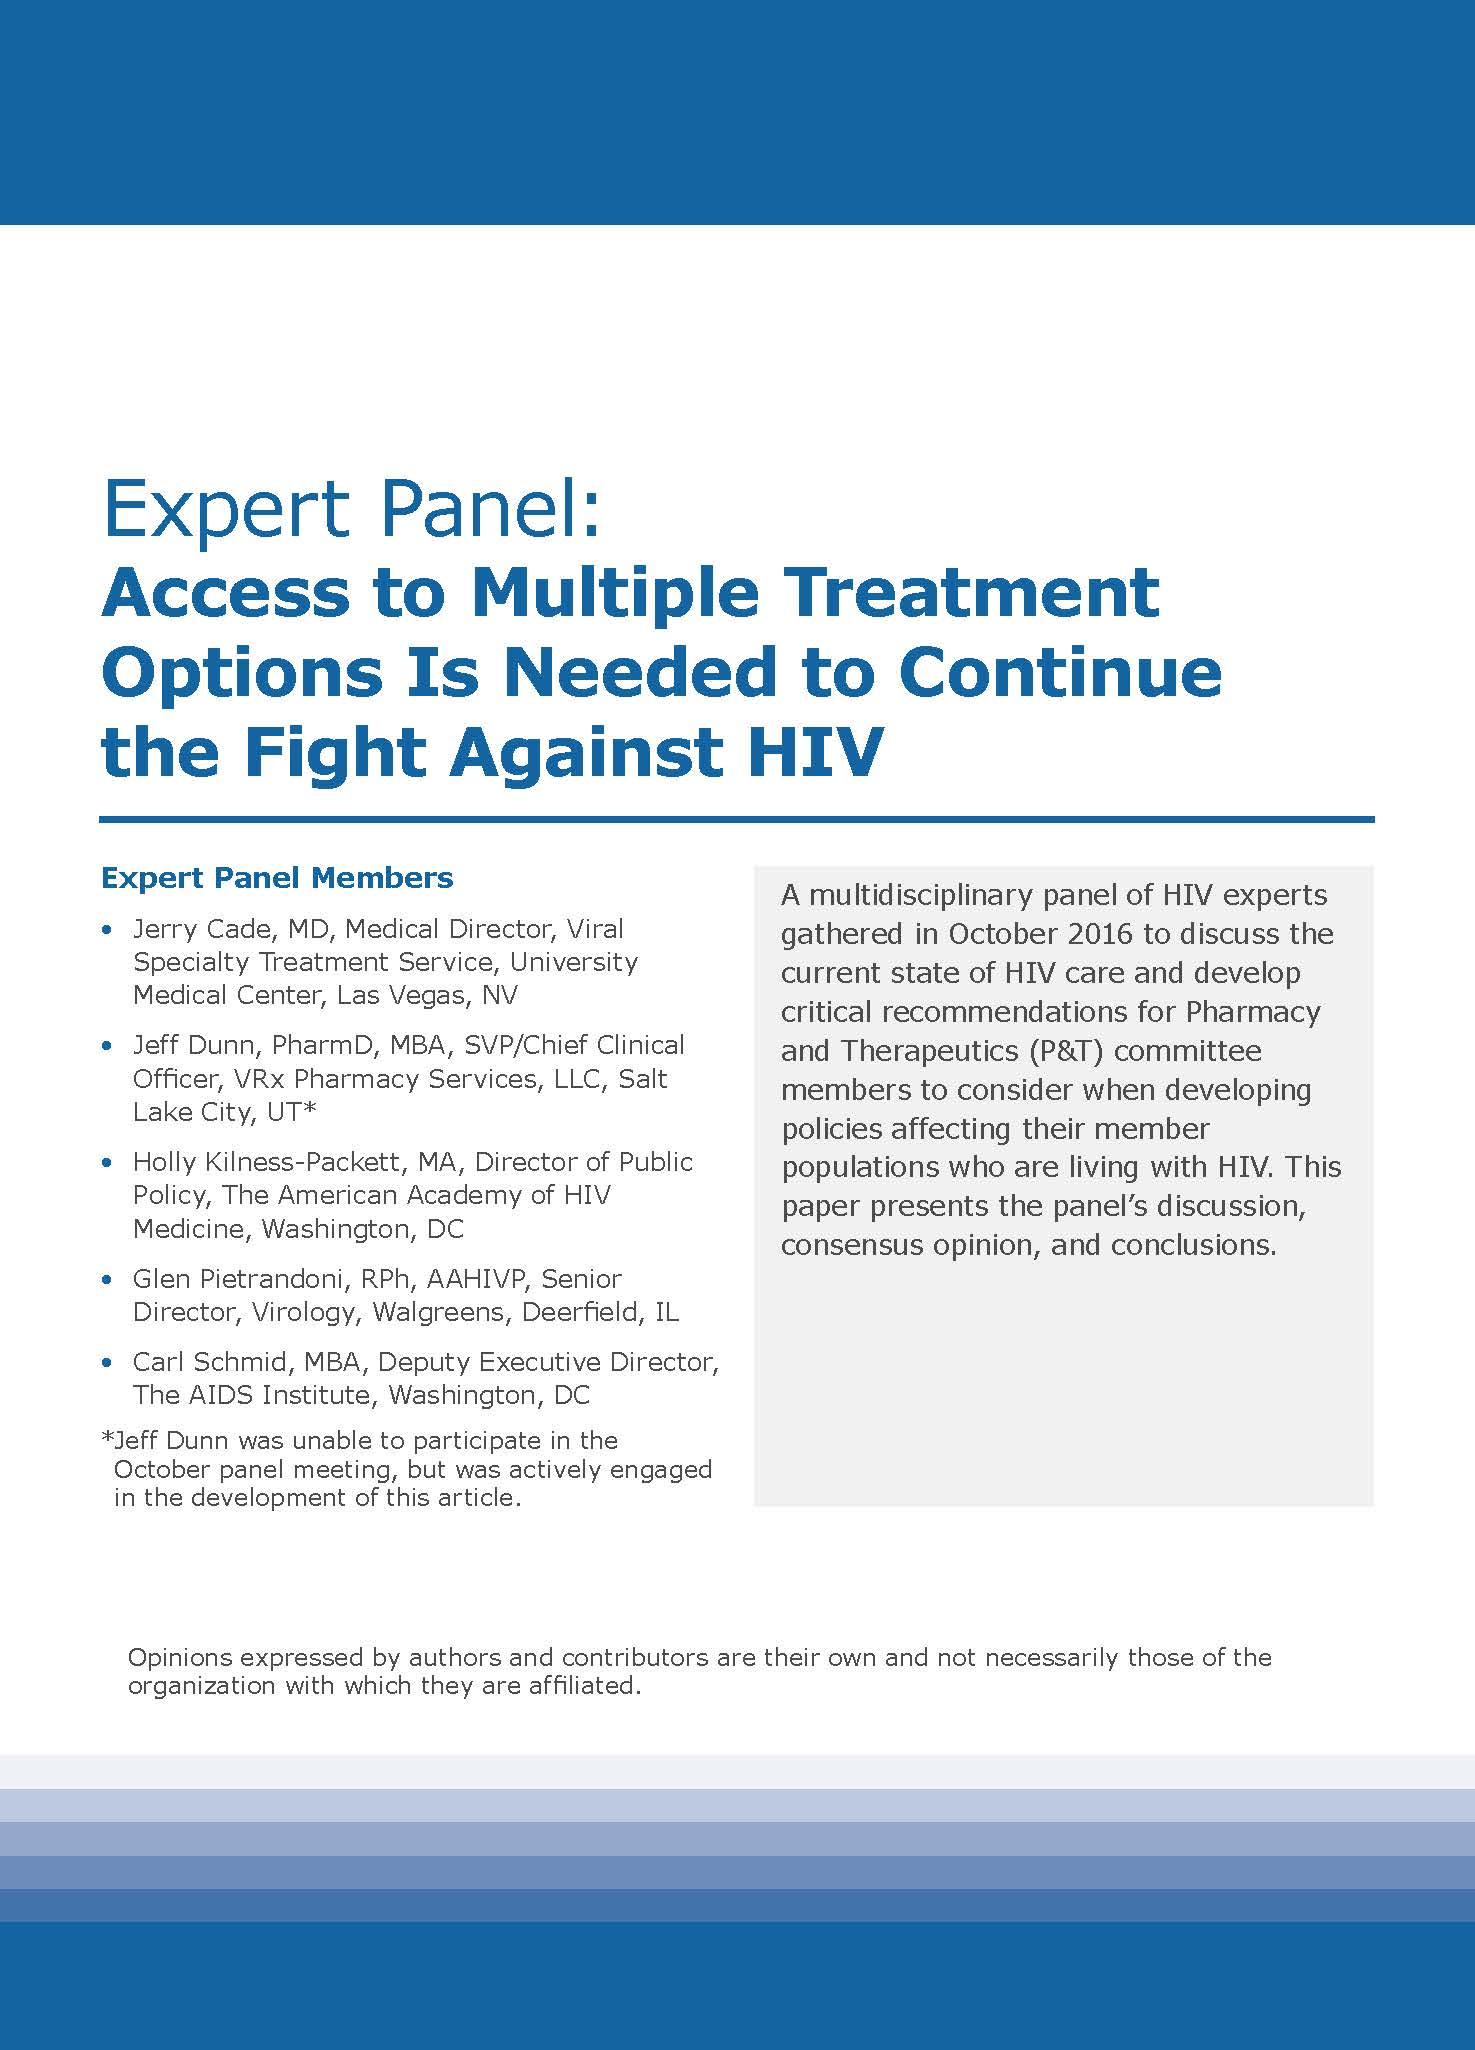 Expert Panel: Access to Multiple Treatment Options Is Needed to Continue the Fight Against HIV